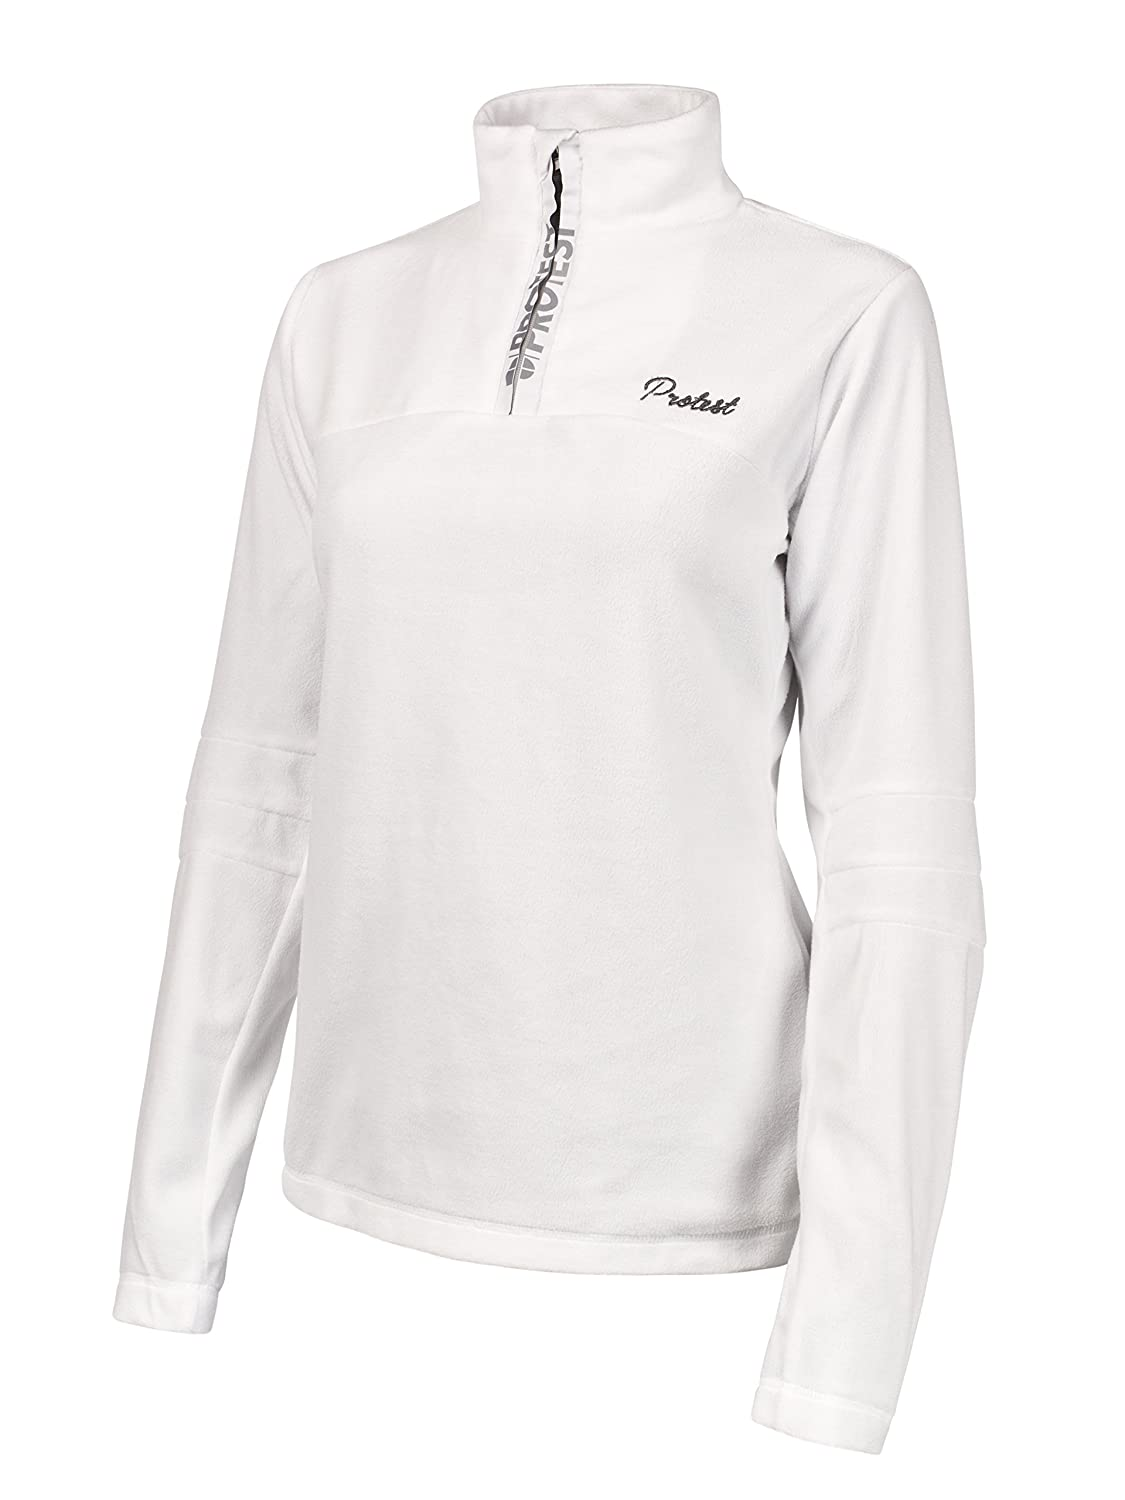 Protest Mute Women's 14 1/4 Zip Top